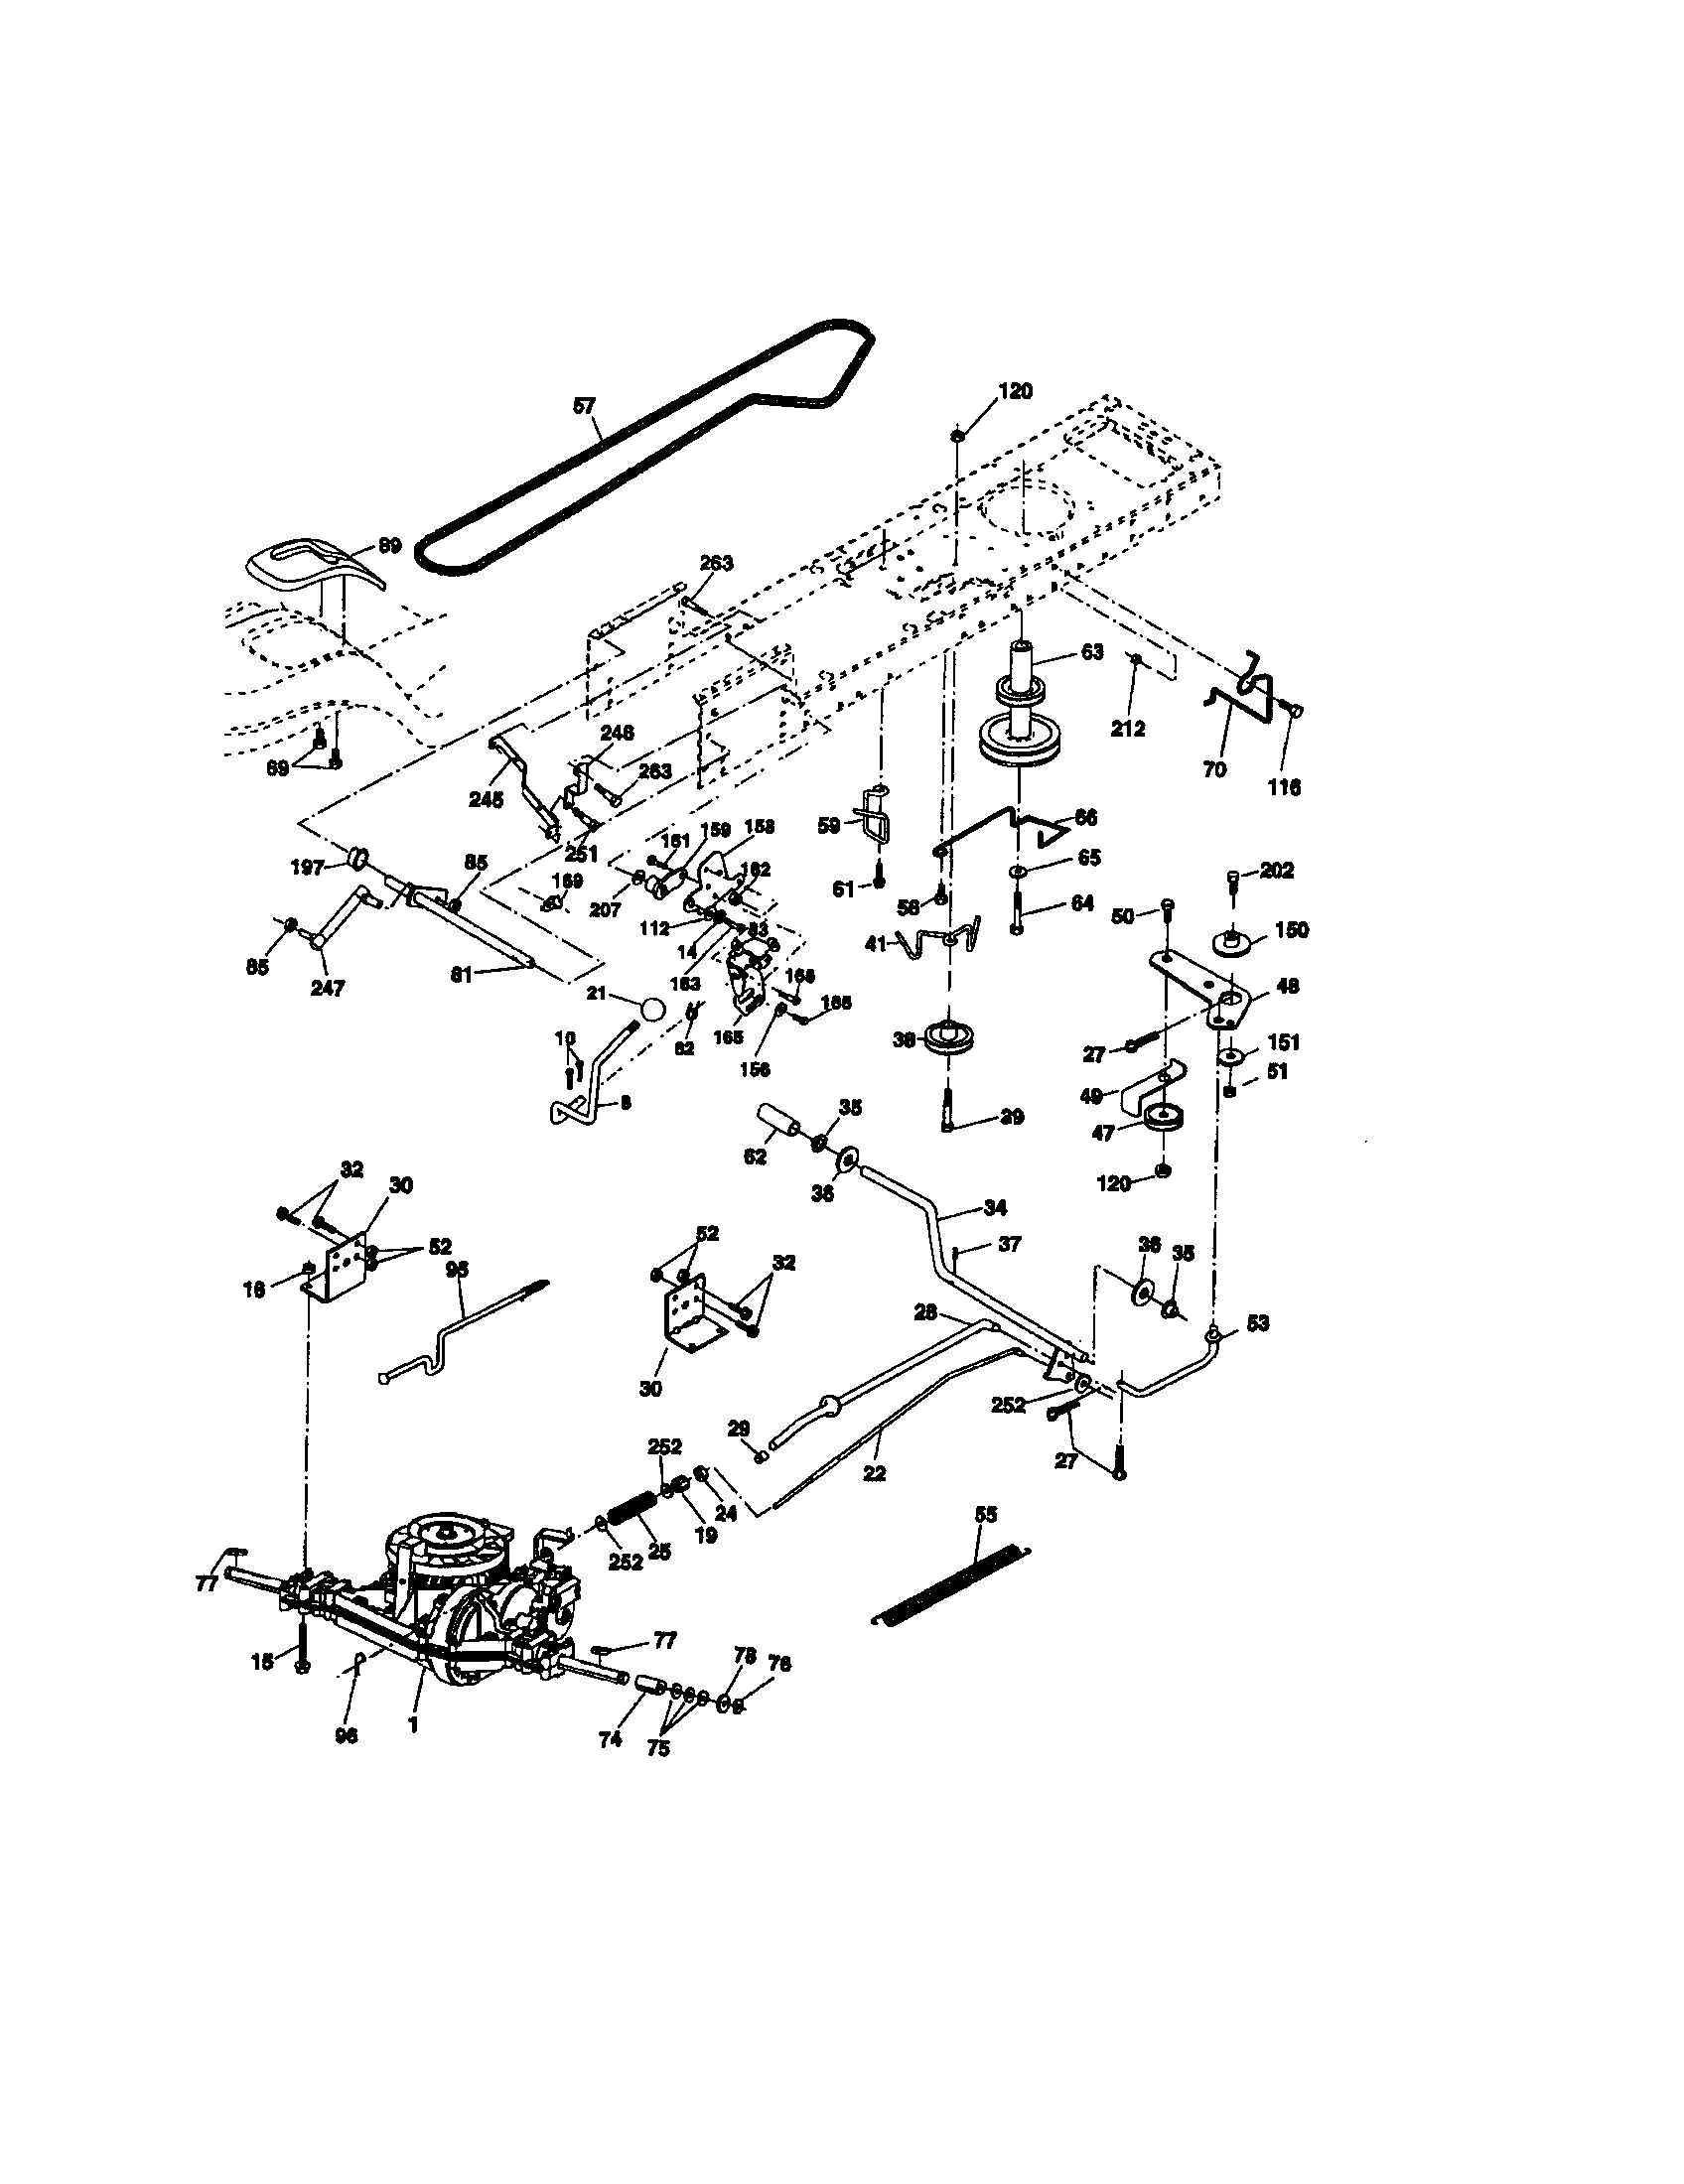 Parts List For Craftsman Lts 2000 Lawn Mower